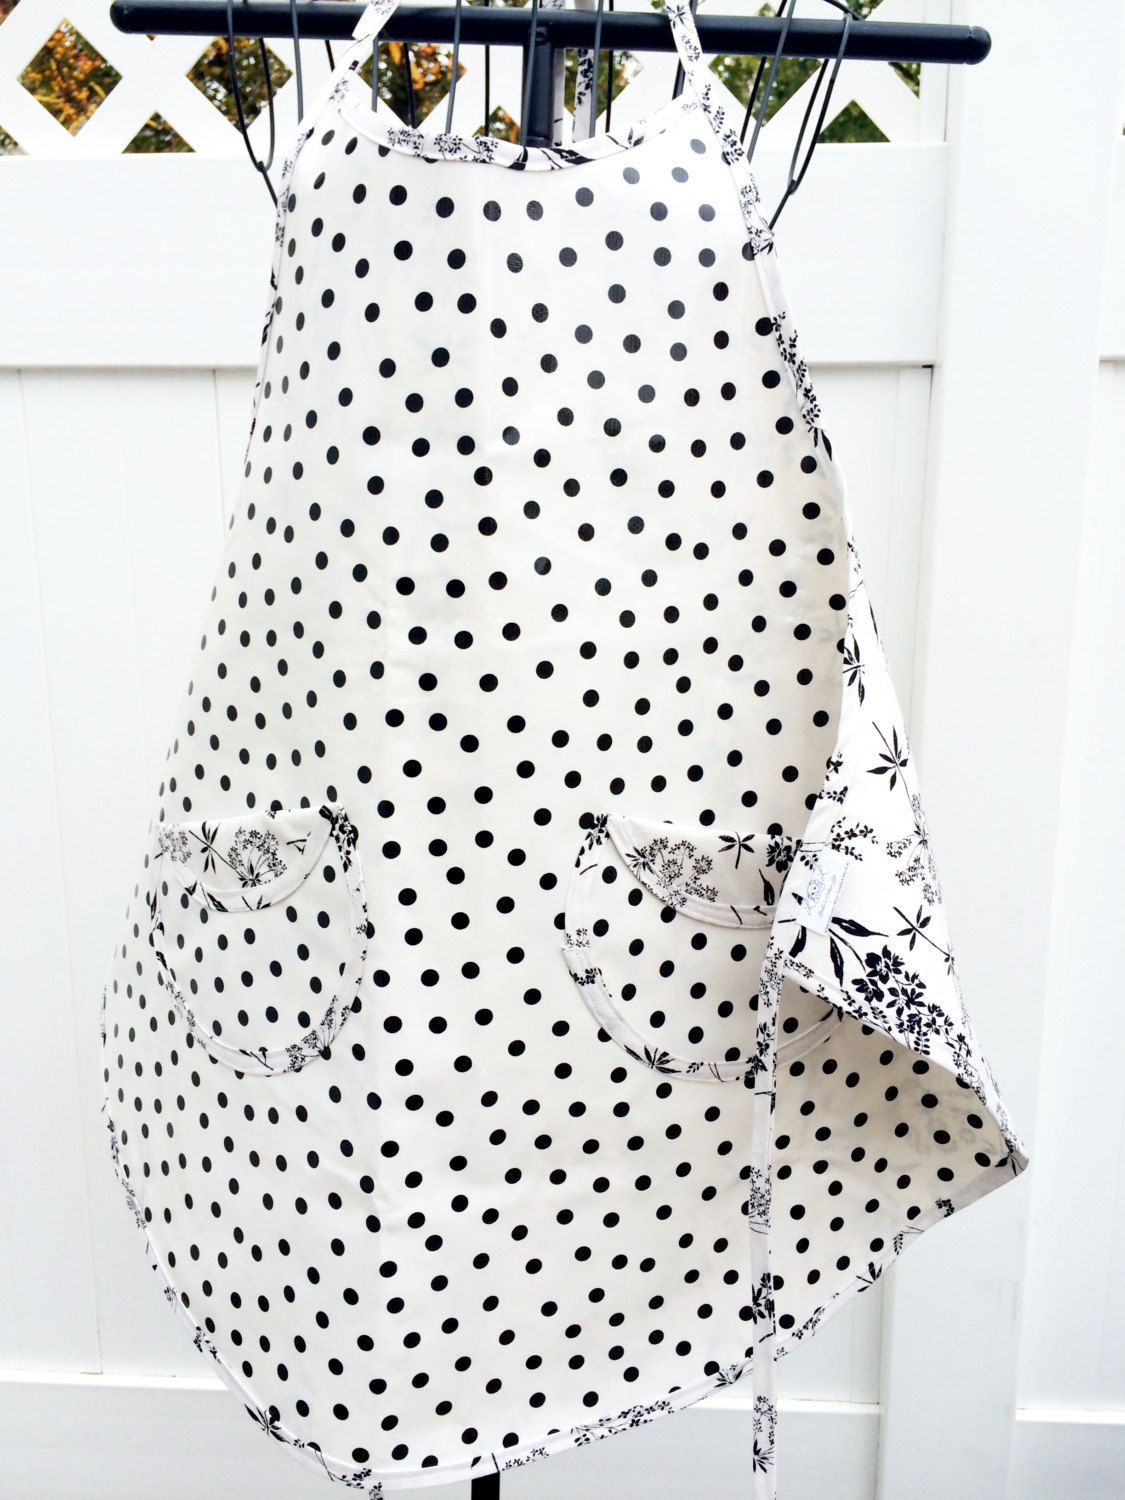 Apron - Oilcloth Apron - Black and White Polka Dot Oilcloth and Floral Print Reversible Apron by LindasOtherLife on Etsy